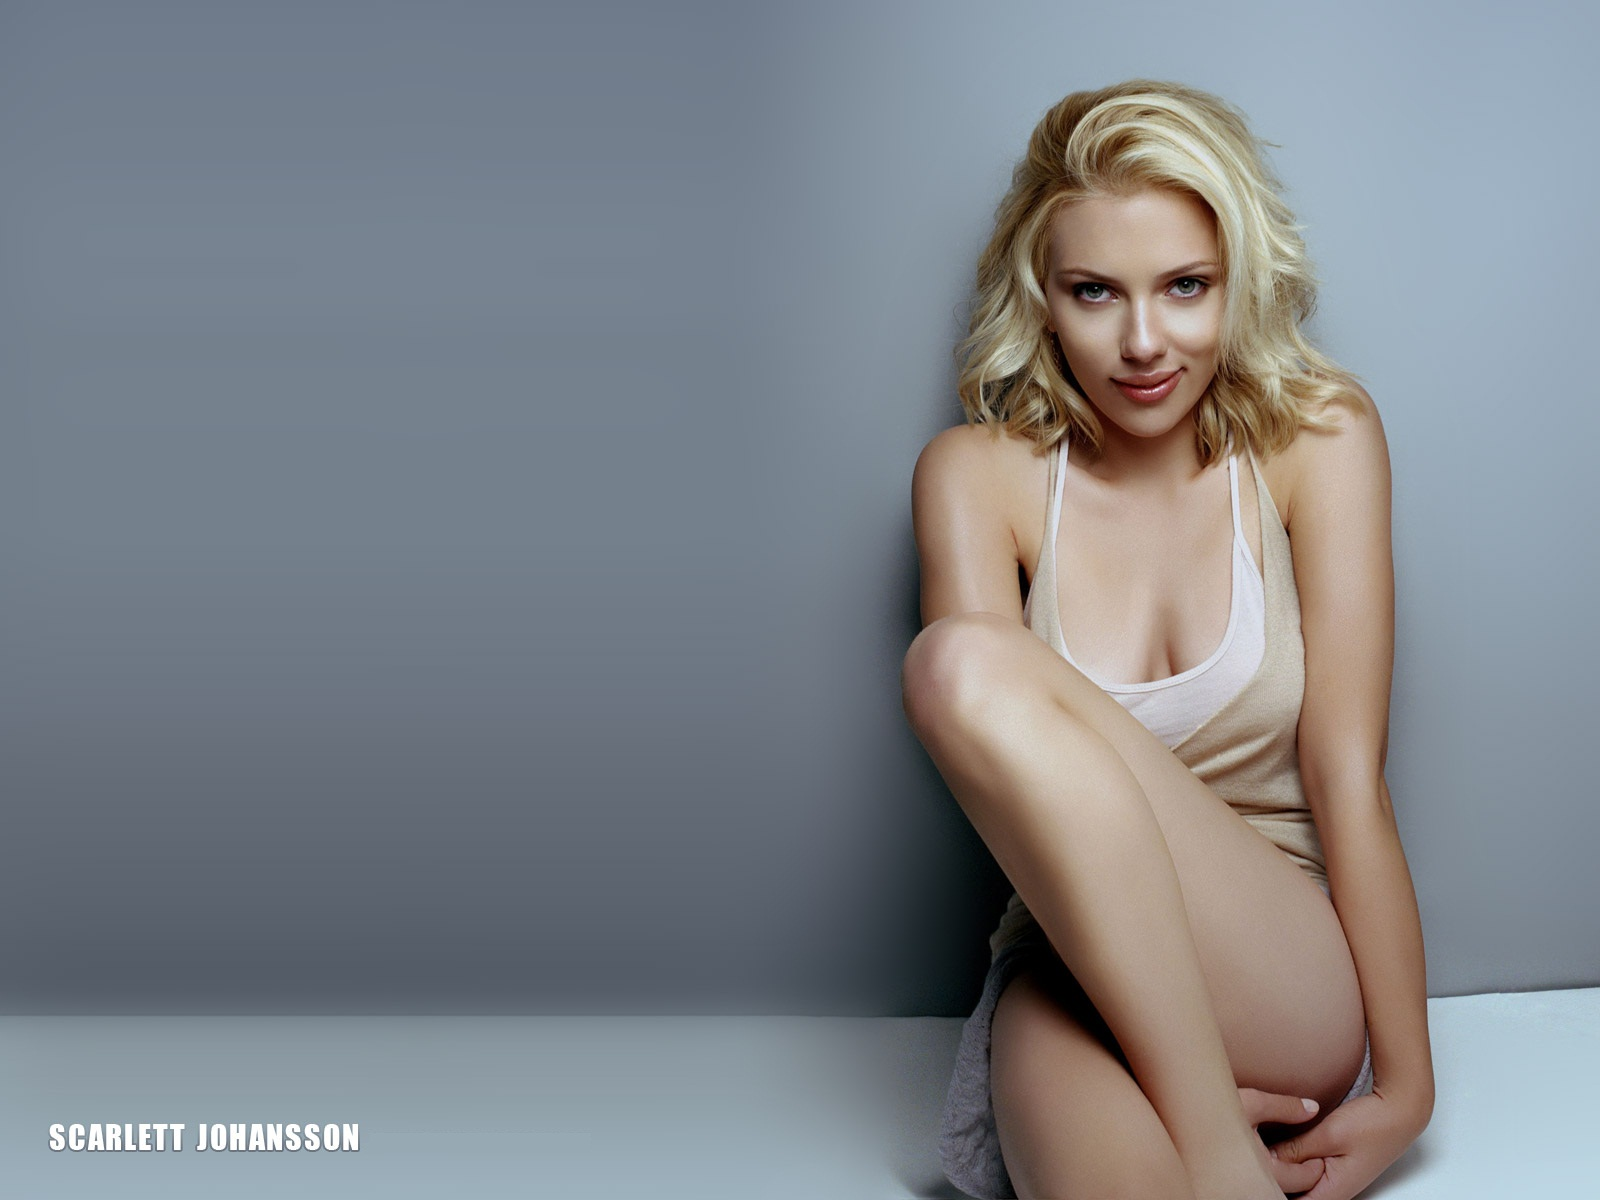 Erotic+and+beautiful+Scarlett+Johansson+giving+seductive+expressions Tags: free hot asian sex videos, mass tech hardcore